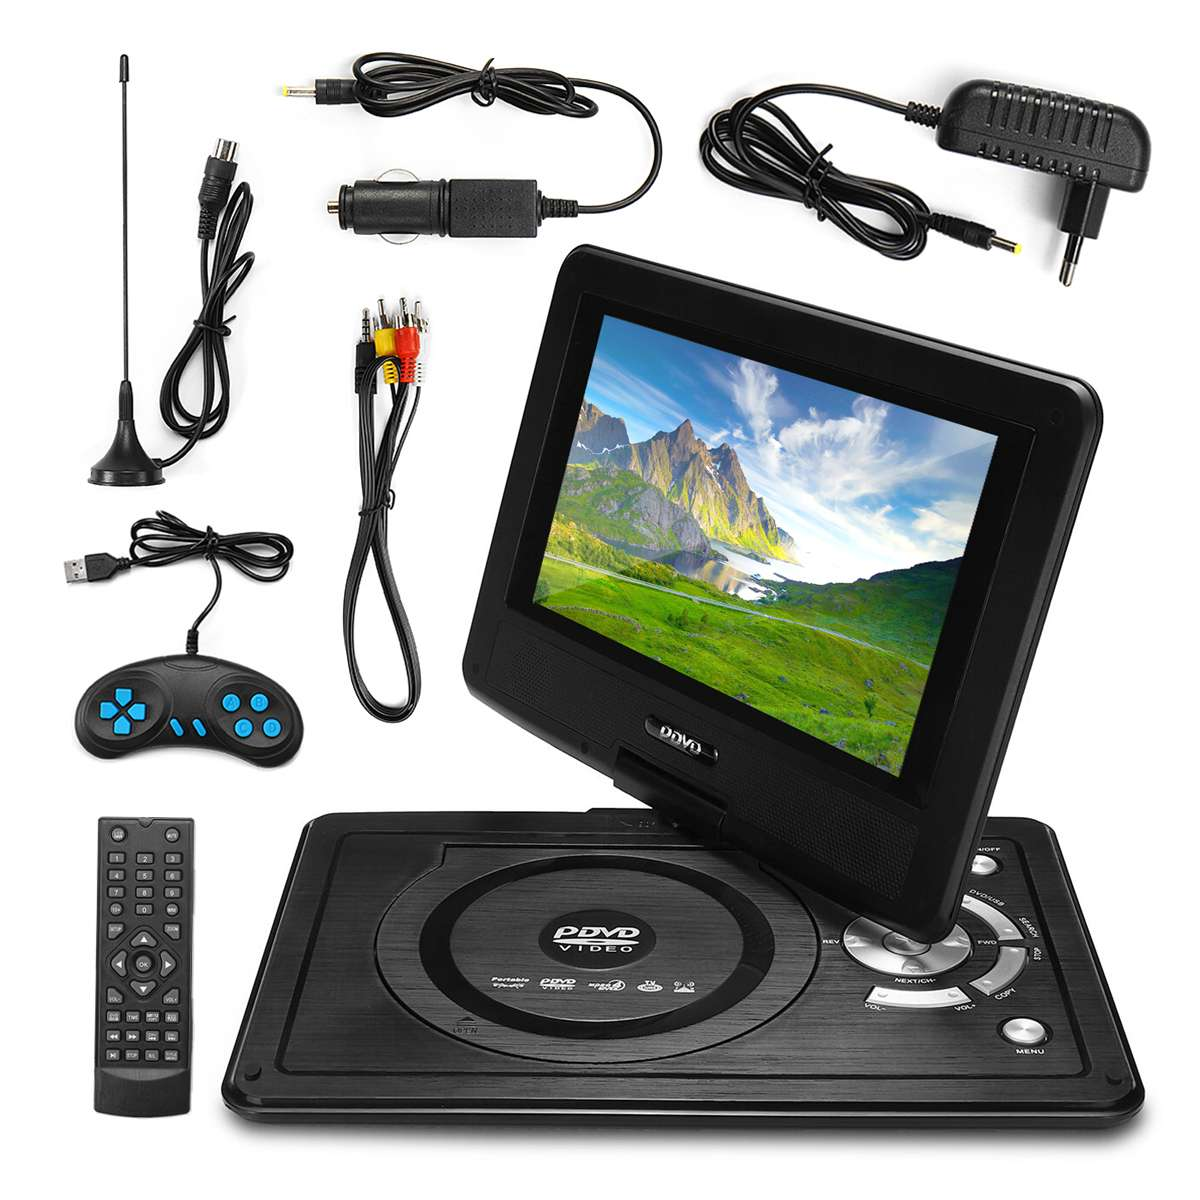 """12.4"""" DVD Player Portable Car DVD Player VCD CD MP3 Portable Game Remote Control Swivel Screen USB SD With DVD/CD ROM RW Case